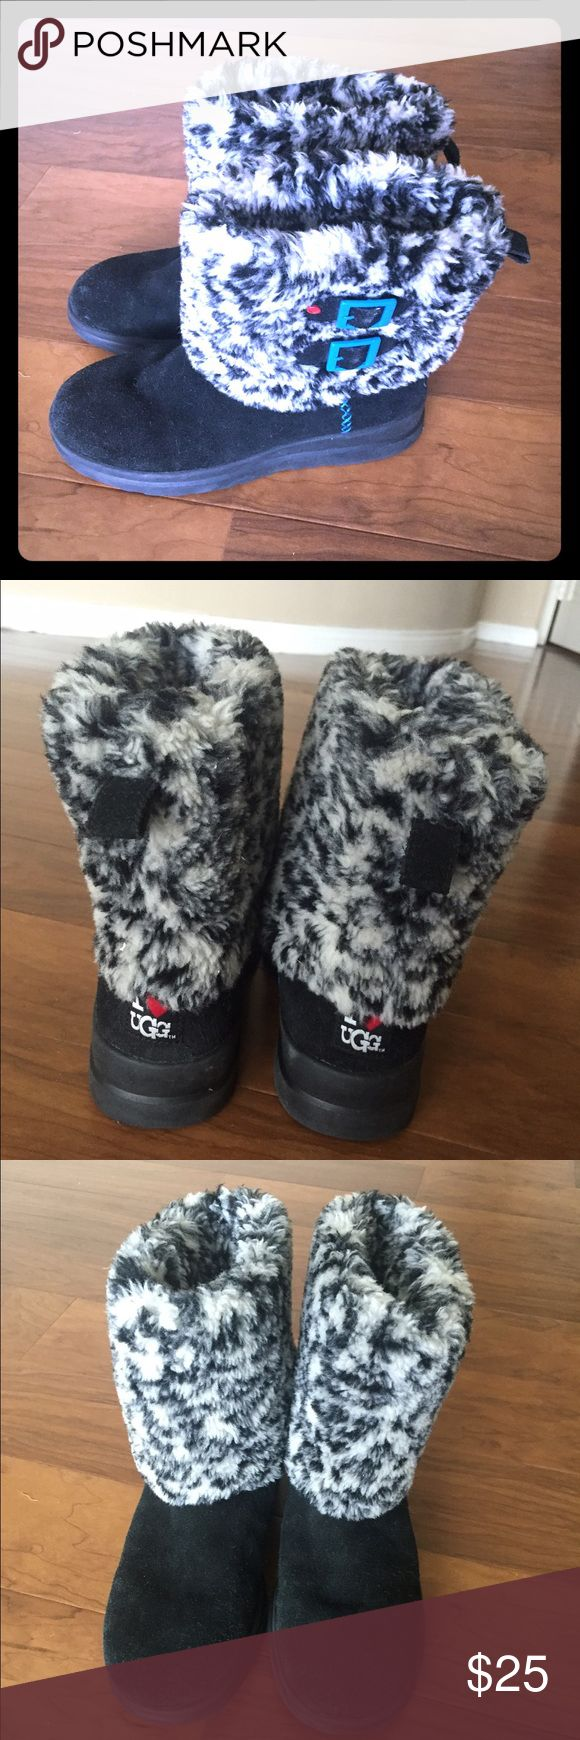 I ❤️ UGG BOOTS!  Black and white Black suede foot with a furry black and white top around ankle area. Good used condition. Size 9 euro size 40 UGG Shoes Ankle Boots & Booties